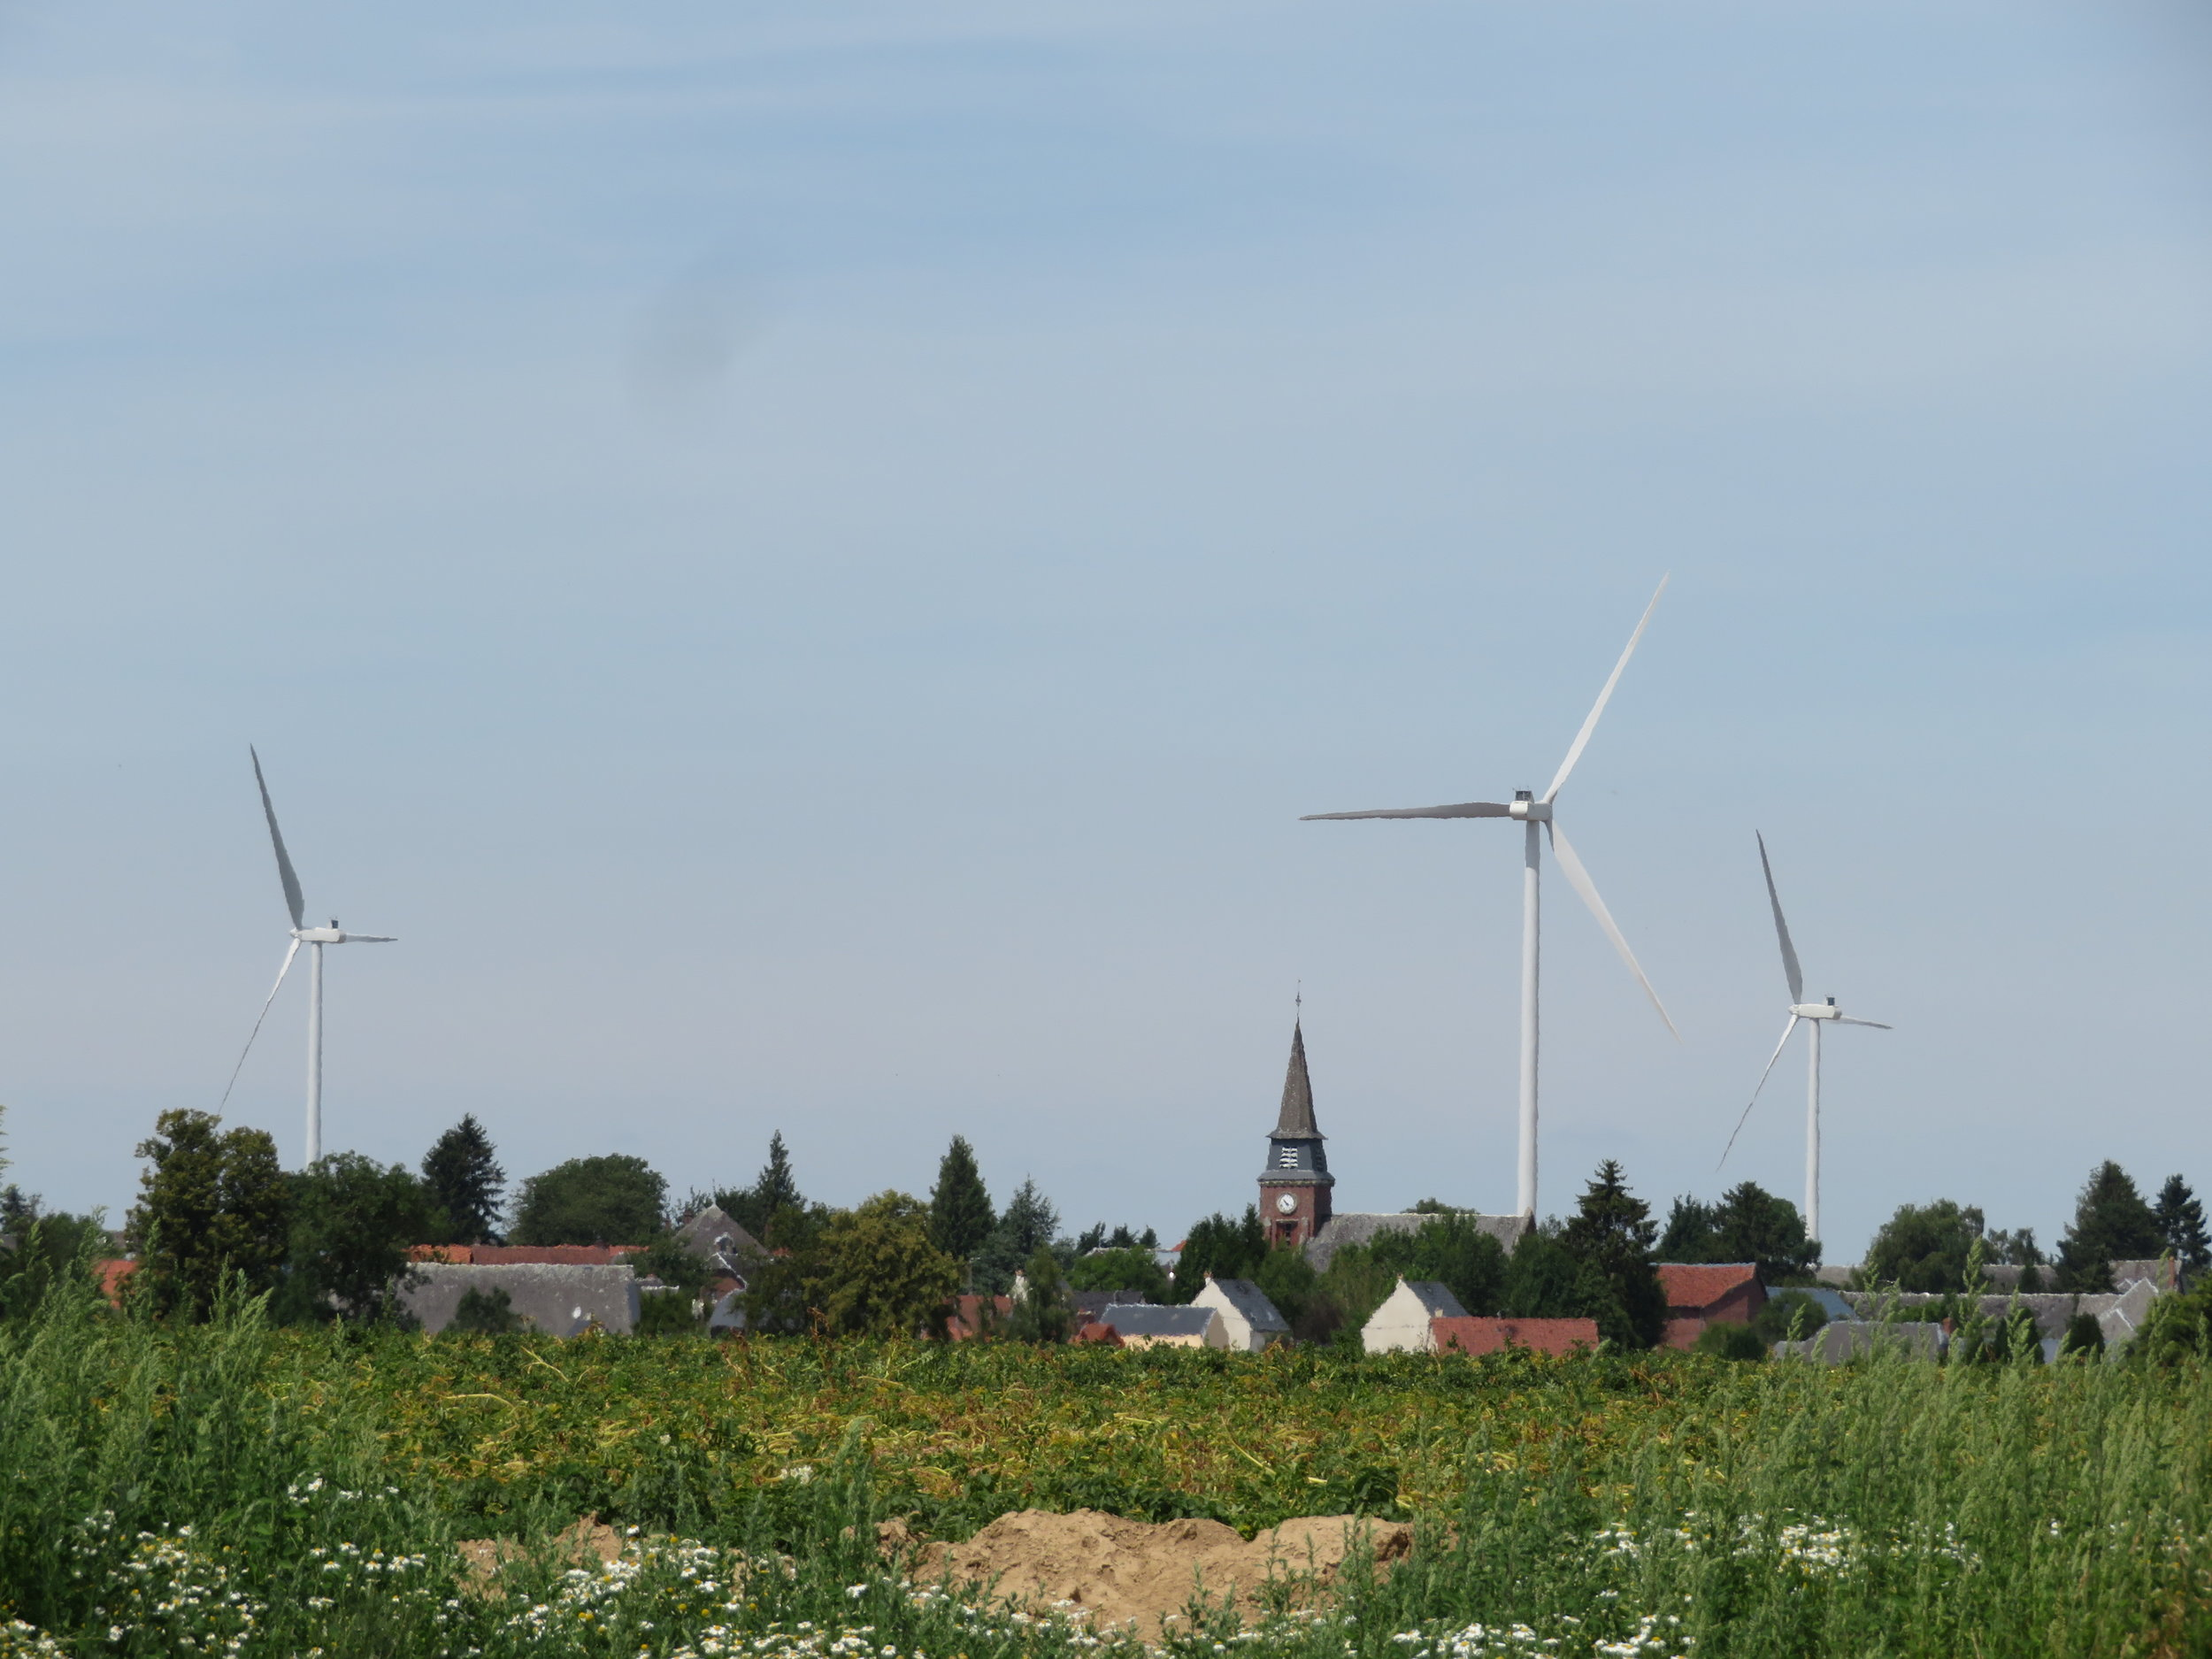 There's a village church steeple any direction you look … and wind turbines.